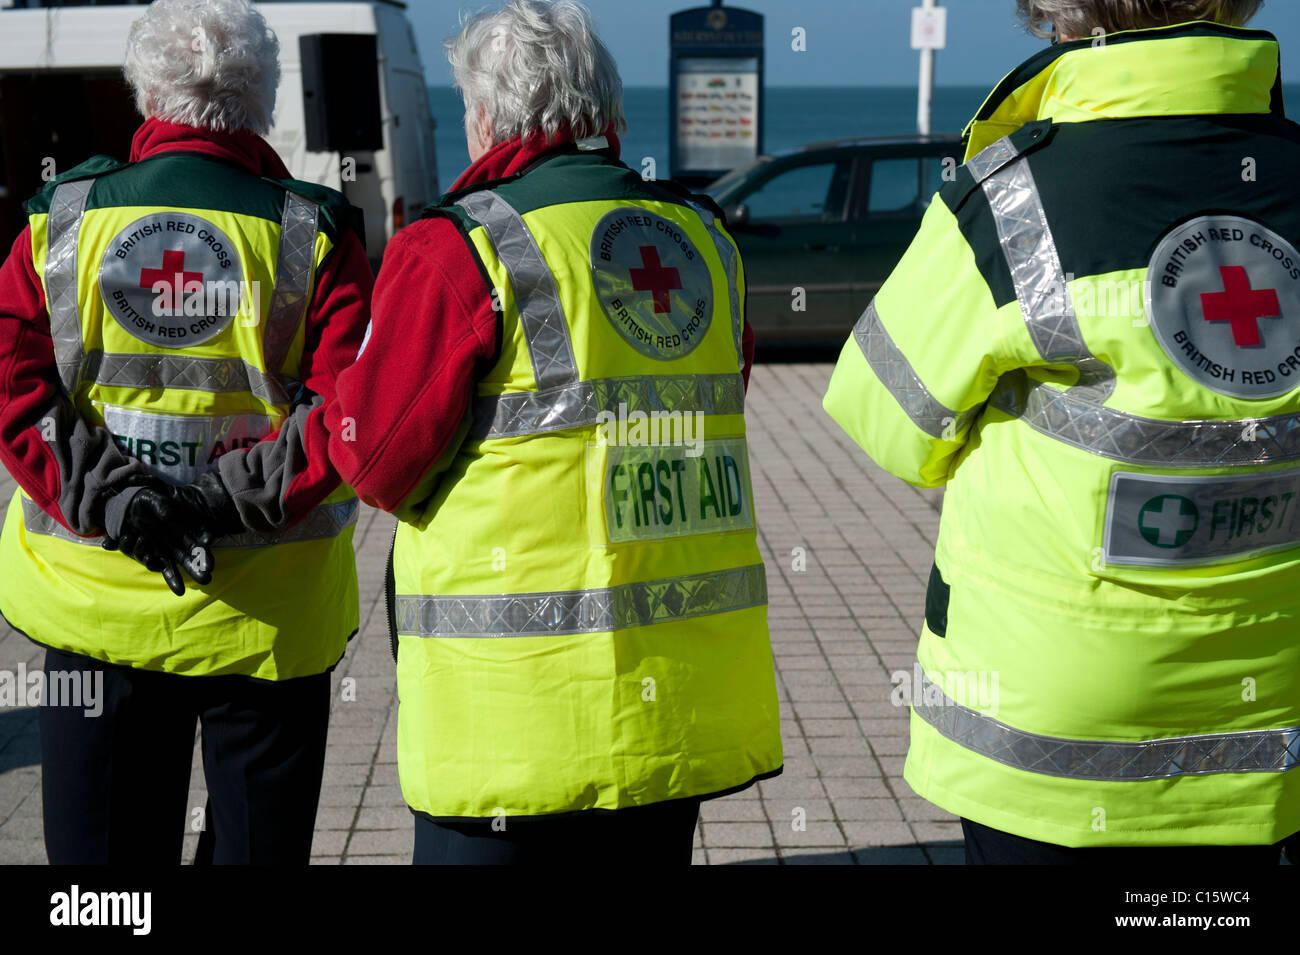 Rear view of three British Red Cross first aid volunteers, UK - Stock Image